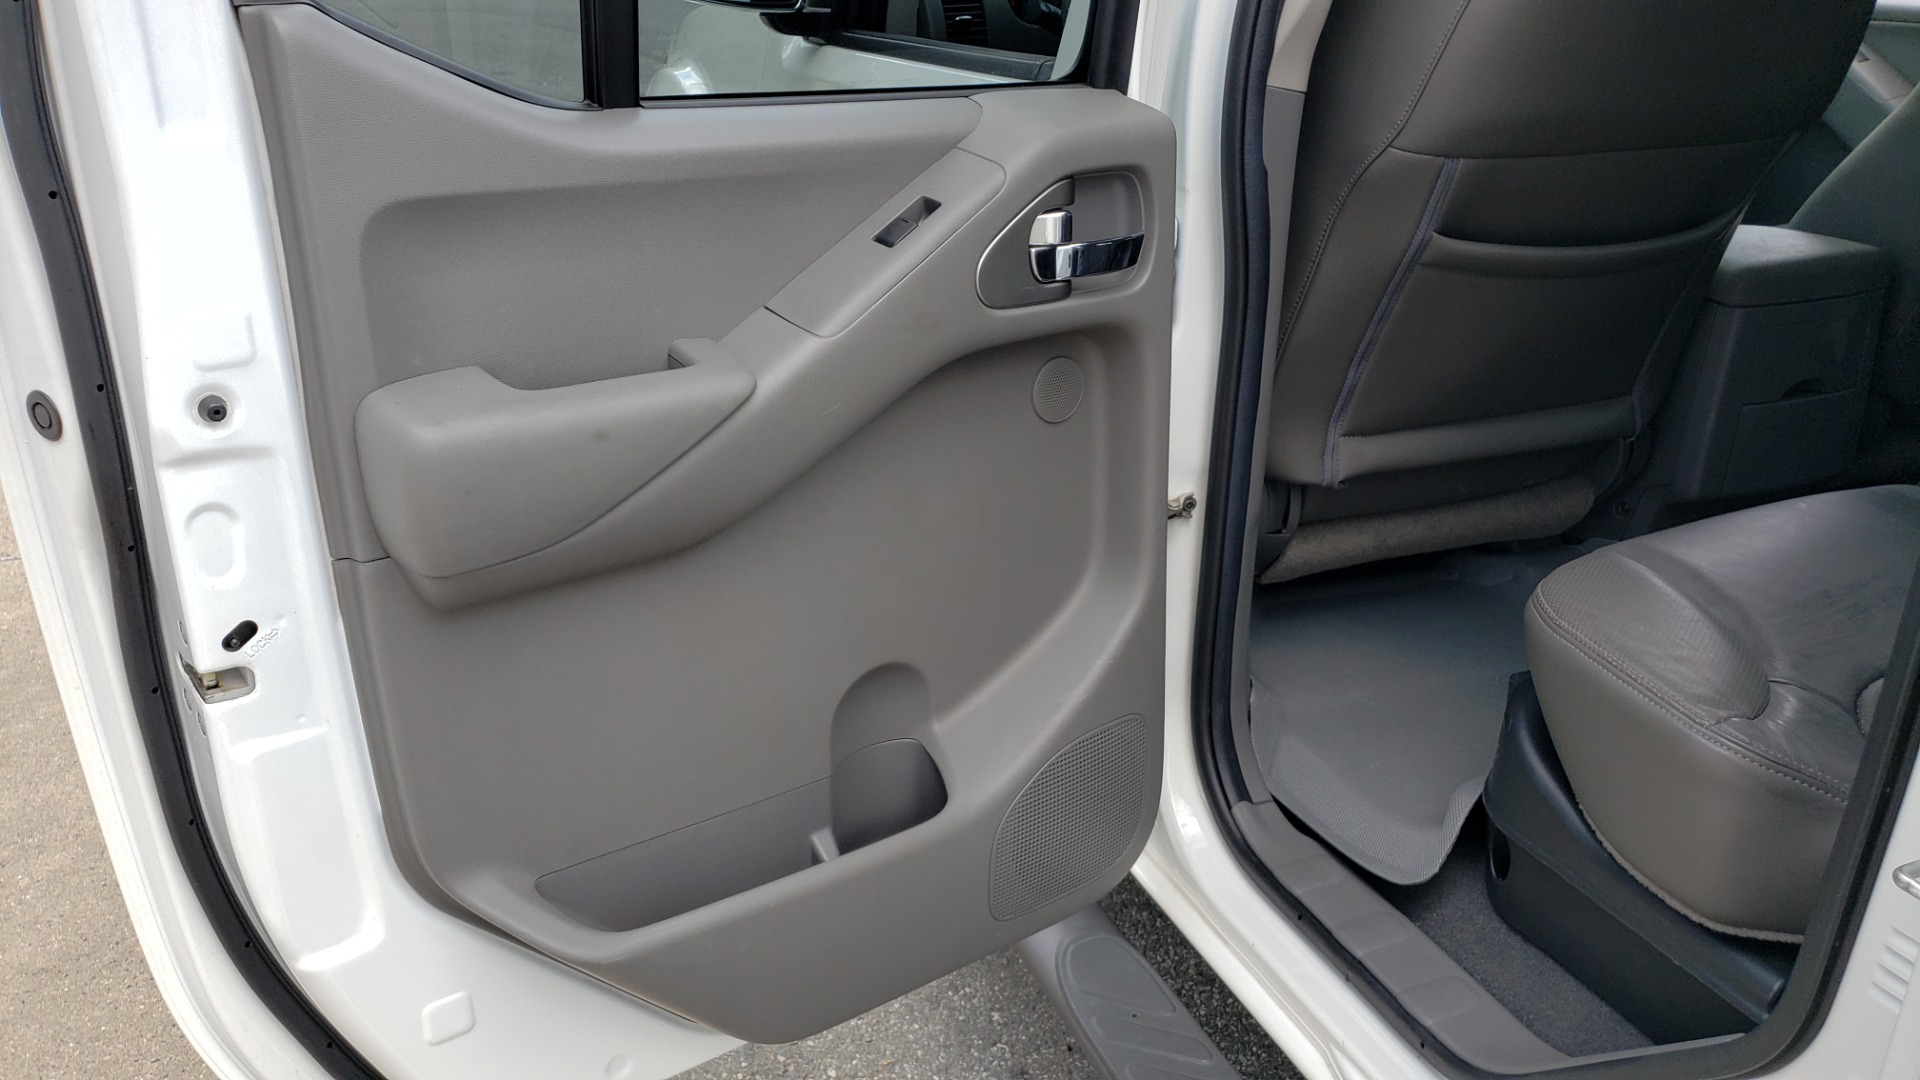 Used 2019 Nissan FRONTIER SL CREW CAB / 4X4 / NAV / SUNROOF / ROCKFORD FOSGATE / LOADED for sale $31,495 at Formula Imports in Charlotte NC 28227 54